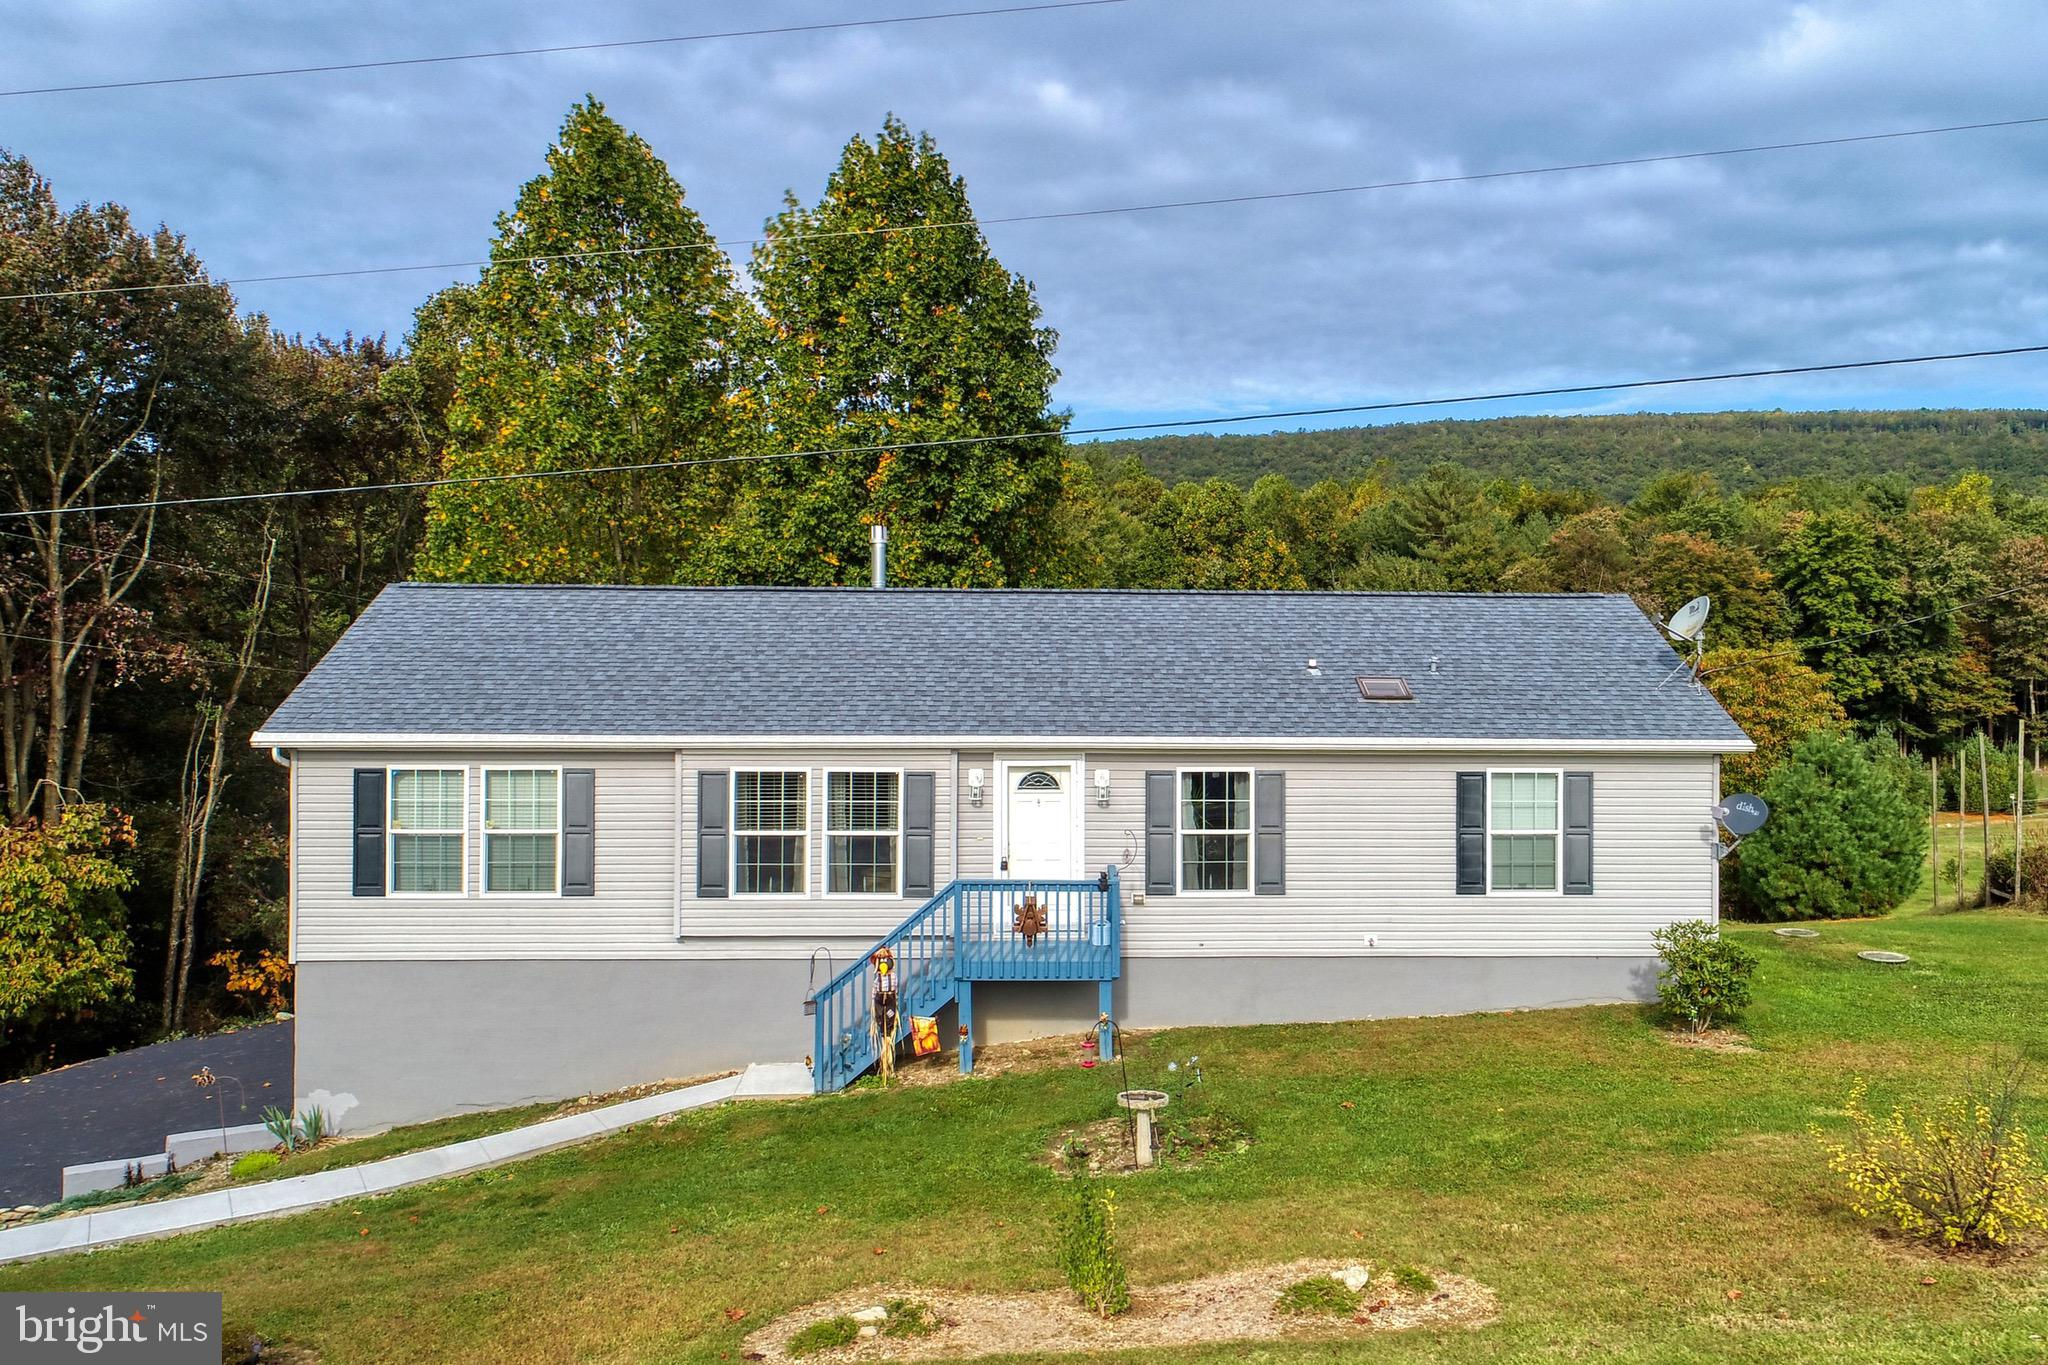 1565 COON ROAD, ASPERS, PA 17304